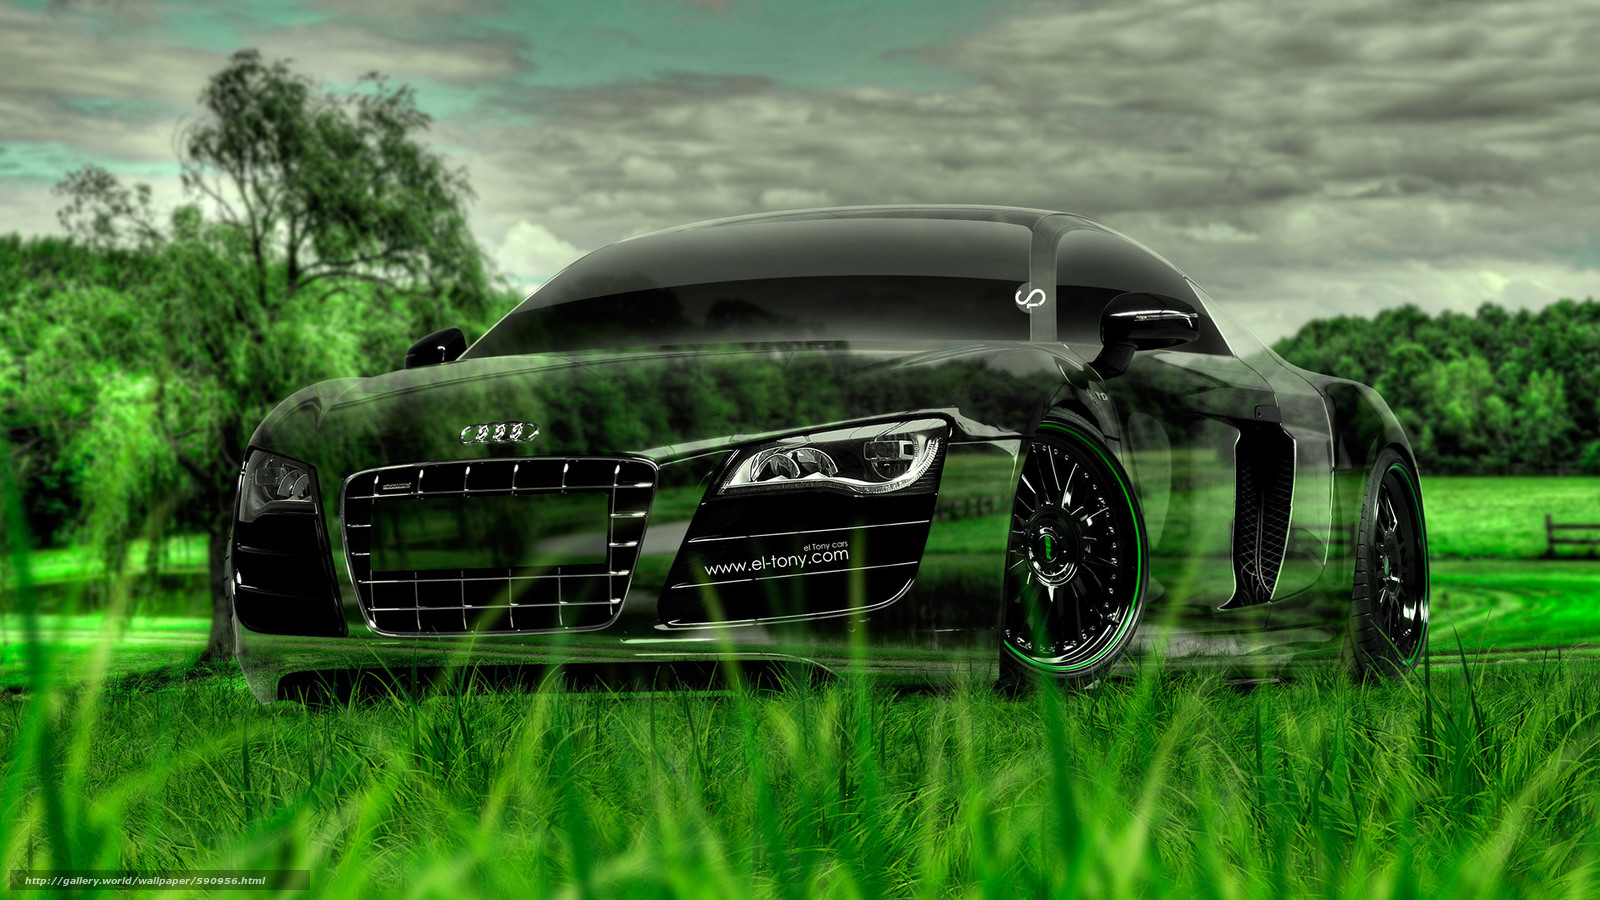 Download wallpaper Tony Kokhan,  Audi,  R8,  Crystal free desktop wallpaper in the resolution 1920x1080 — picture №590956